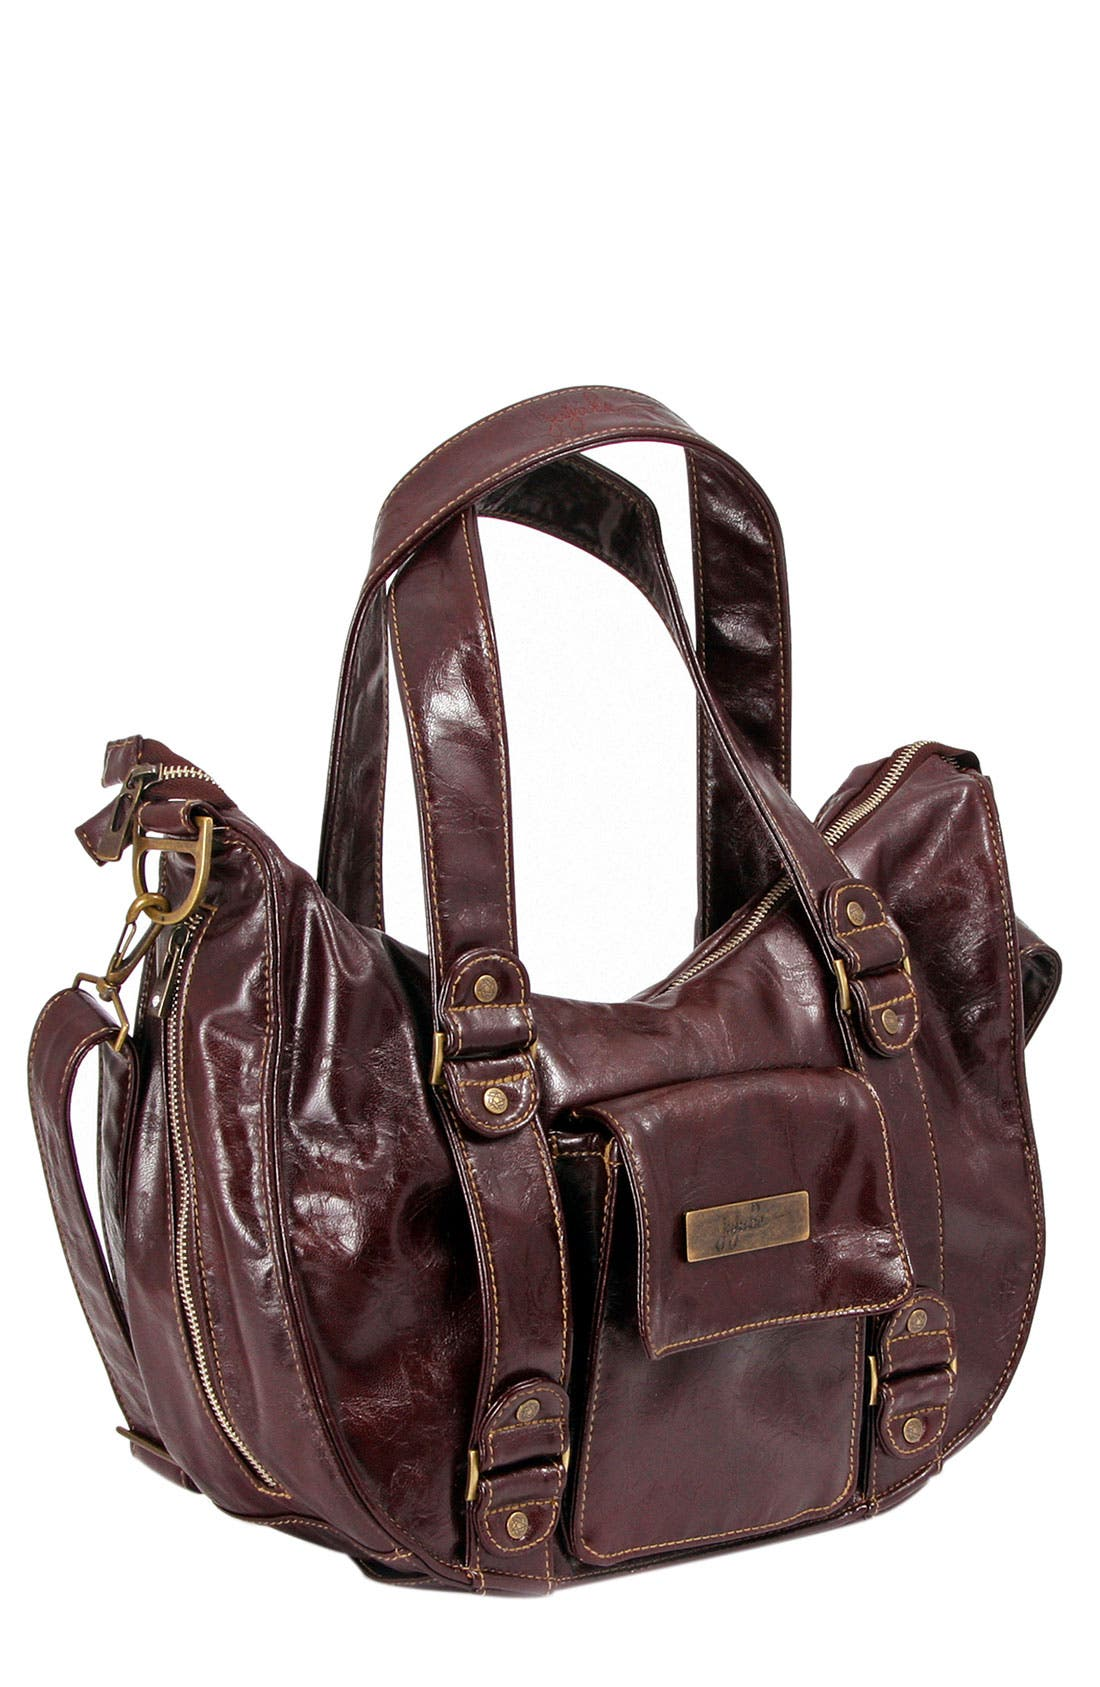 Main Image - Ju-Ju-Be 'Legacy' Earth Leather™ Faux Leather Diaper Bag